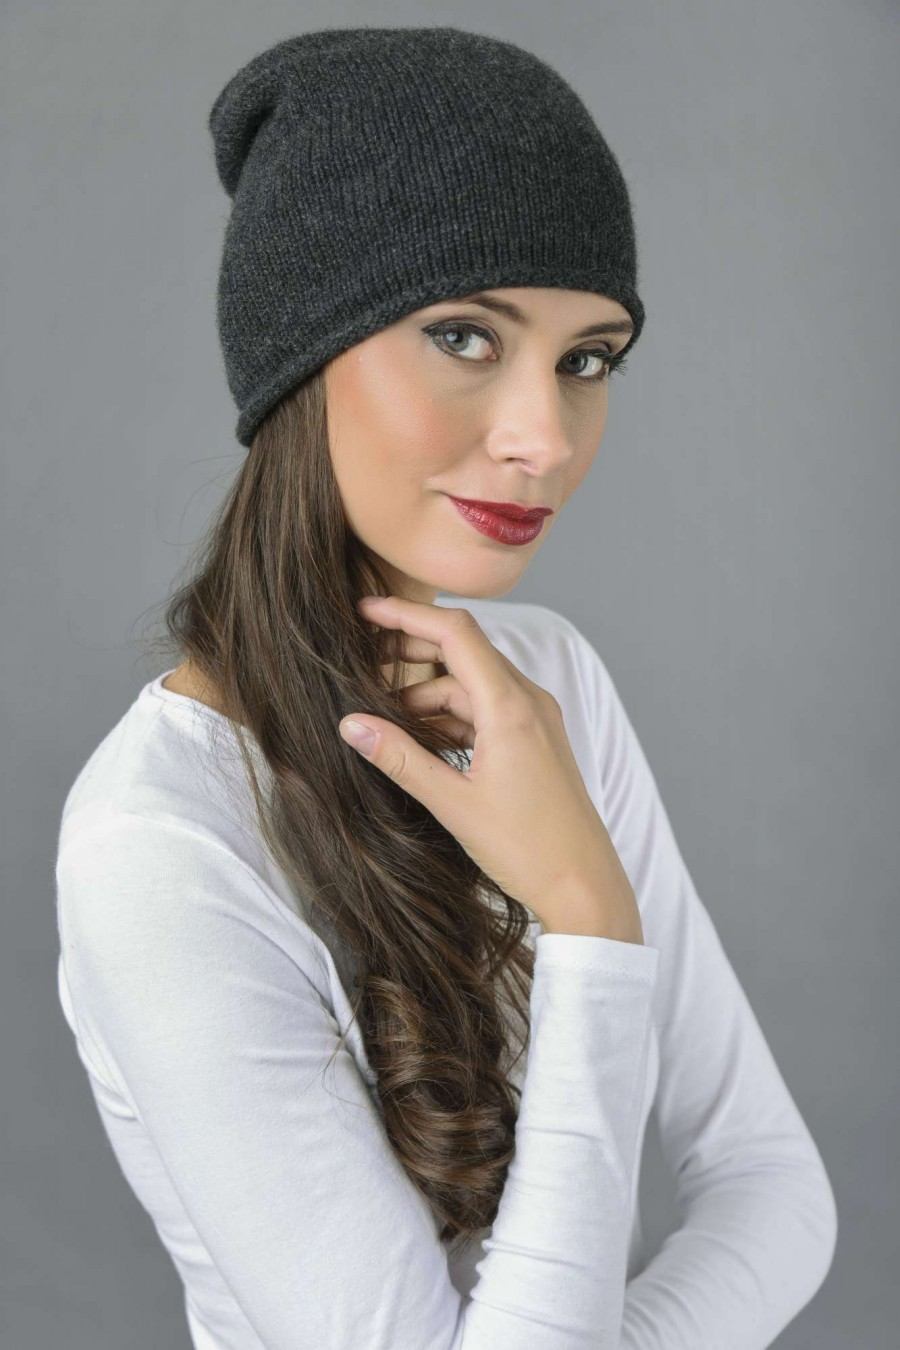 Pure Cashmere Plain Knitted Slouchy Beanie Hat in Charcoal Grey ... ffc6320c850